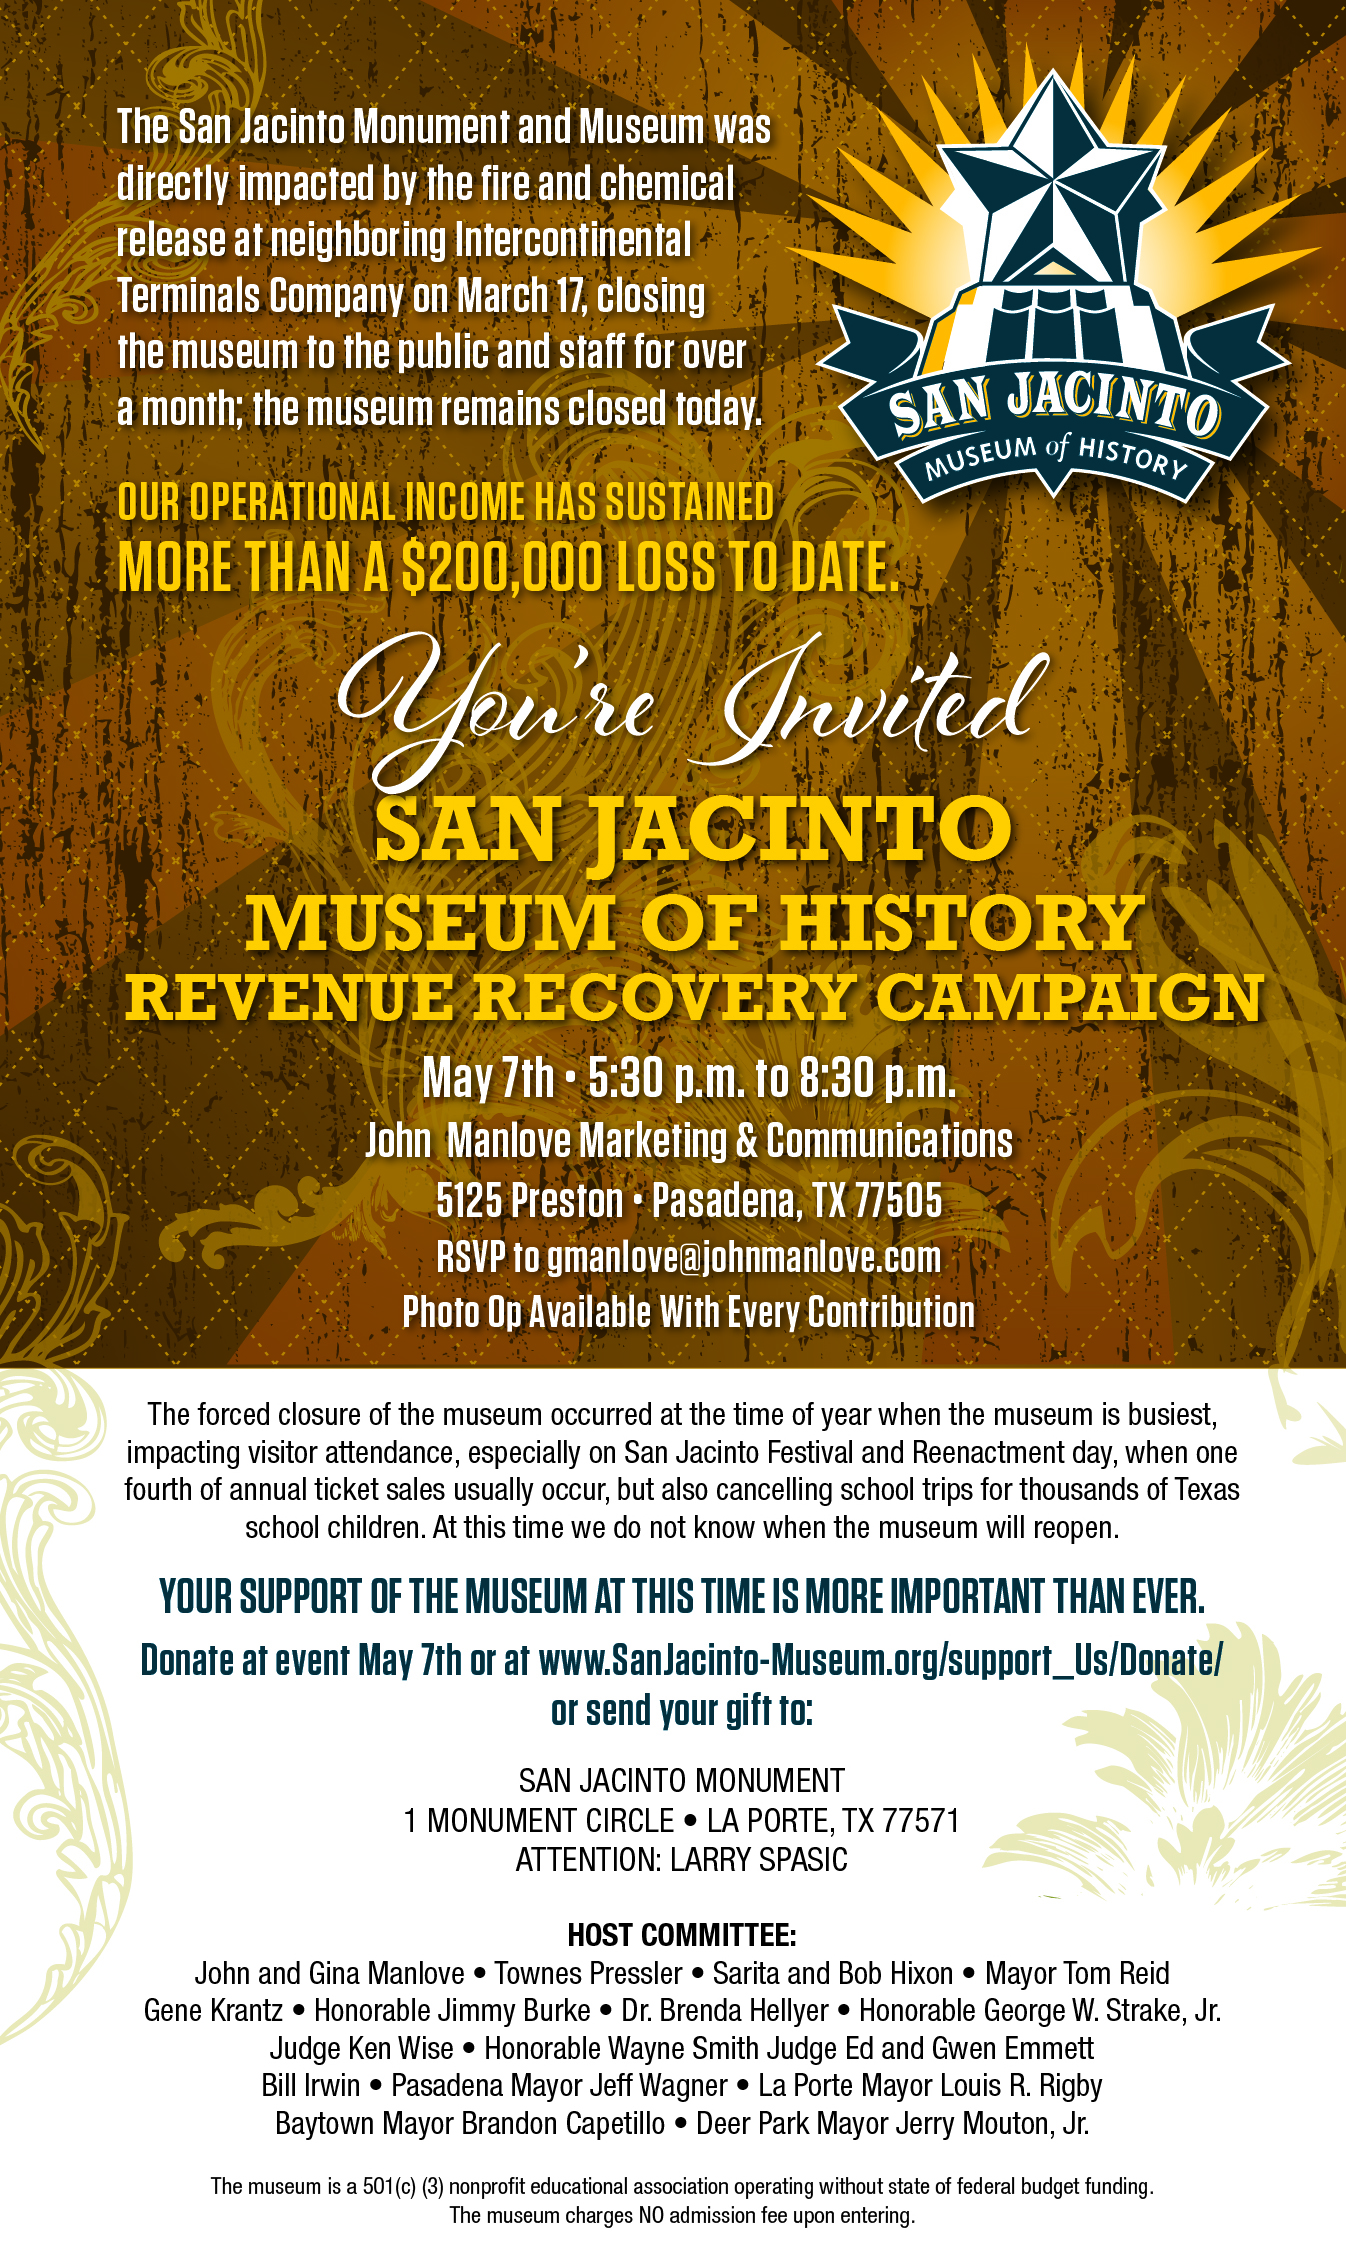 You're Invited San Jacinto Museum of History Revenue Recovery Campaign